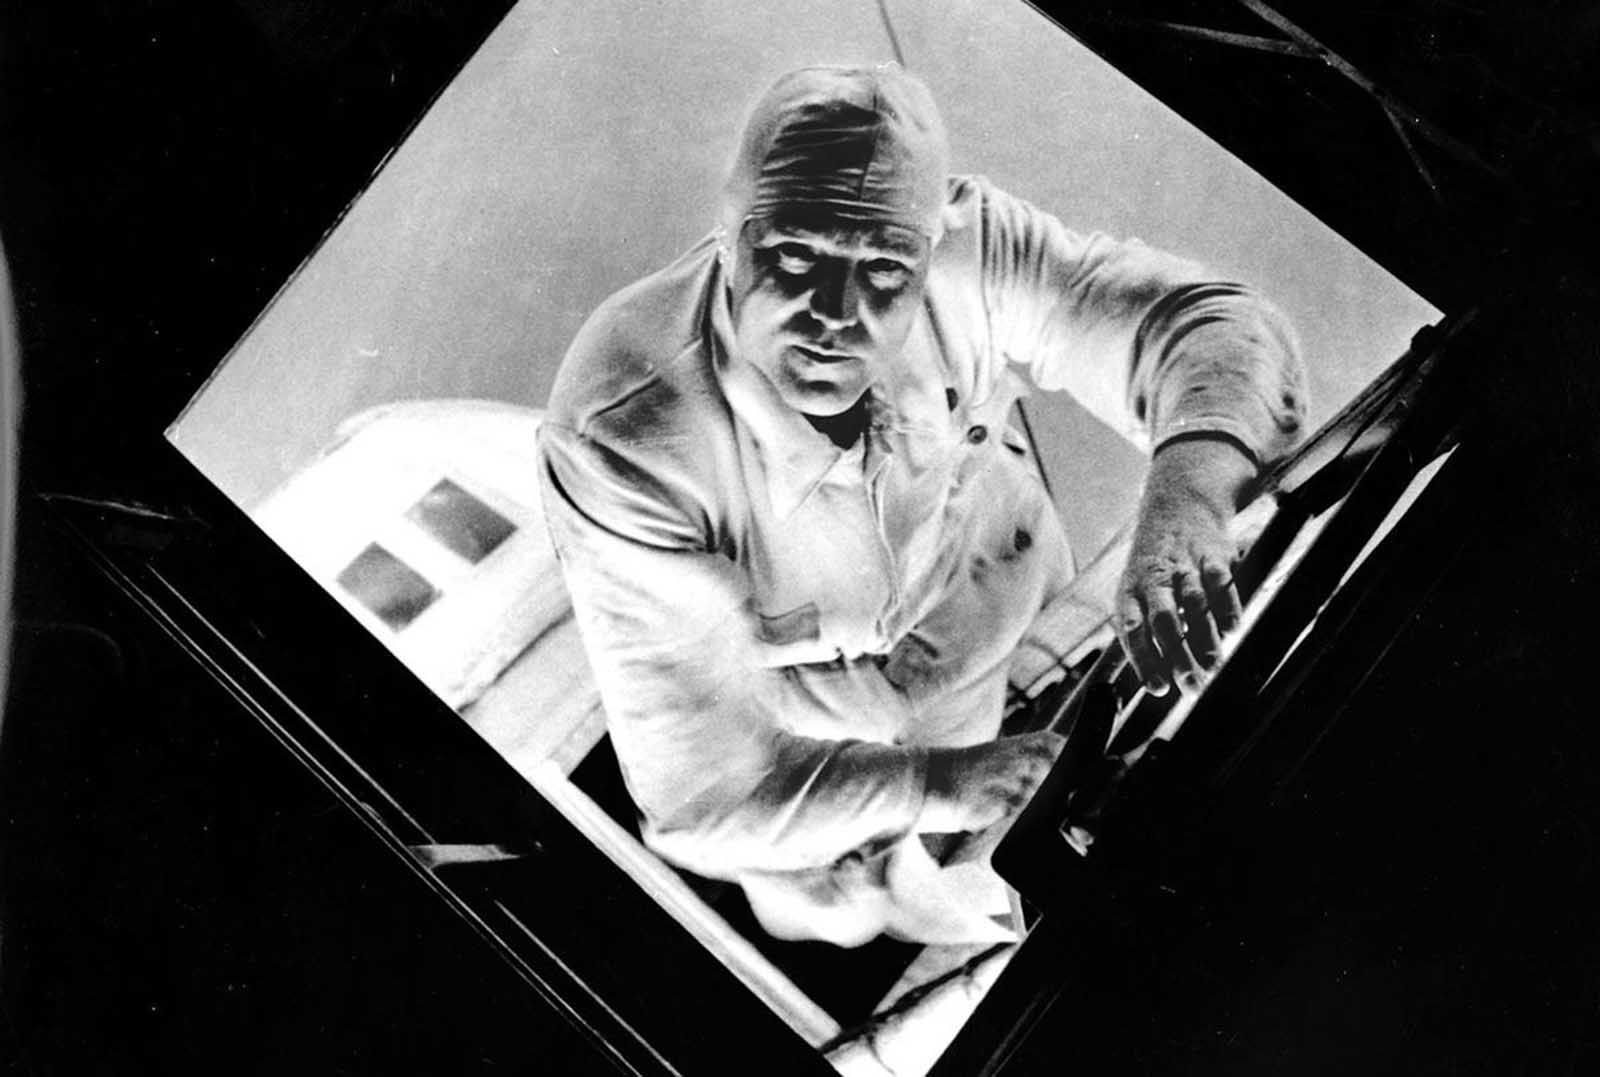 The mechanic of the rear engine gondola changes shift climbing inside the mantle of the airship, as the Graf Zeppelin sails over the Atlantic Ocean in a seven-day journey from Europe to South America, in August of 1933.